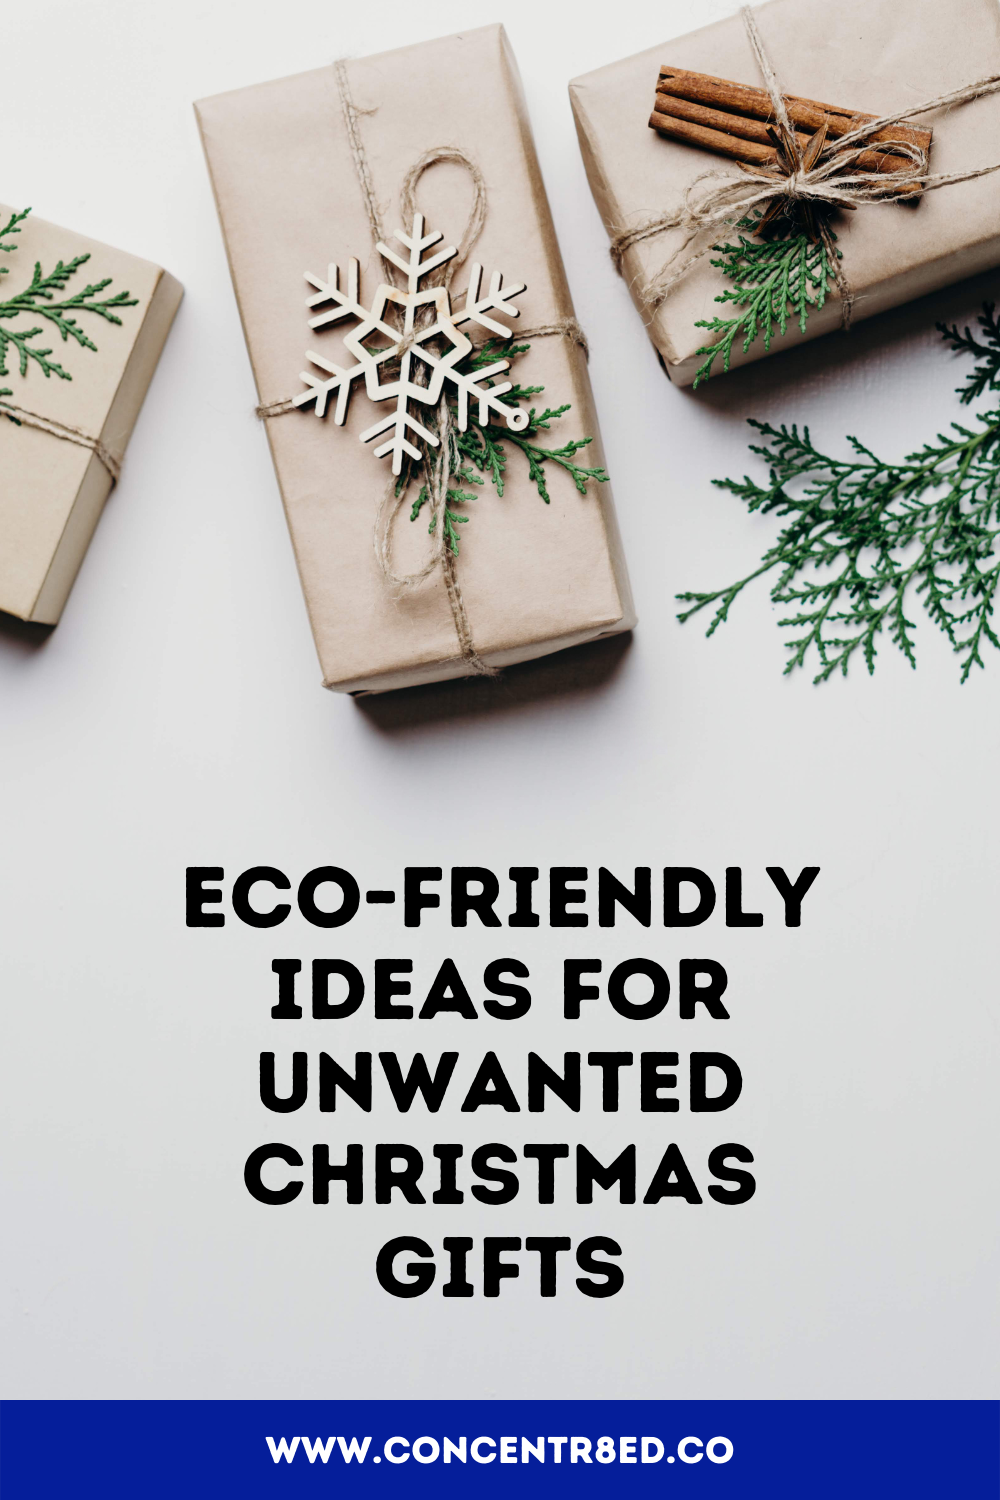 Eco-friendly ideas for unwanted Christmas gifts